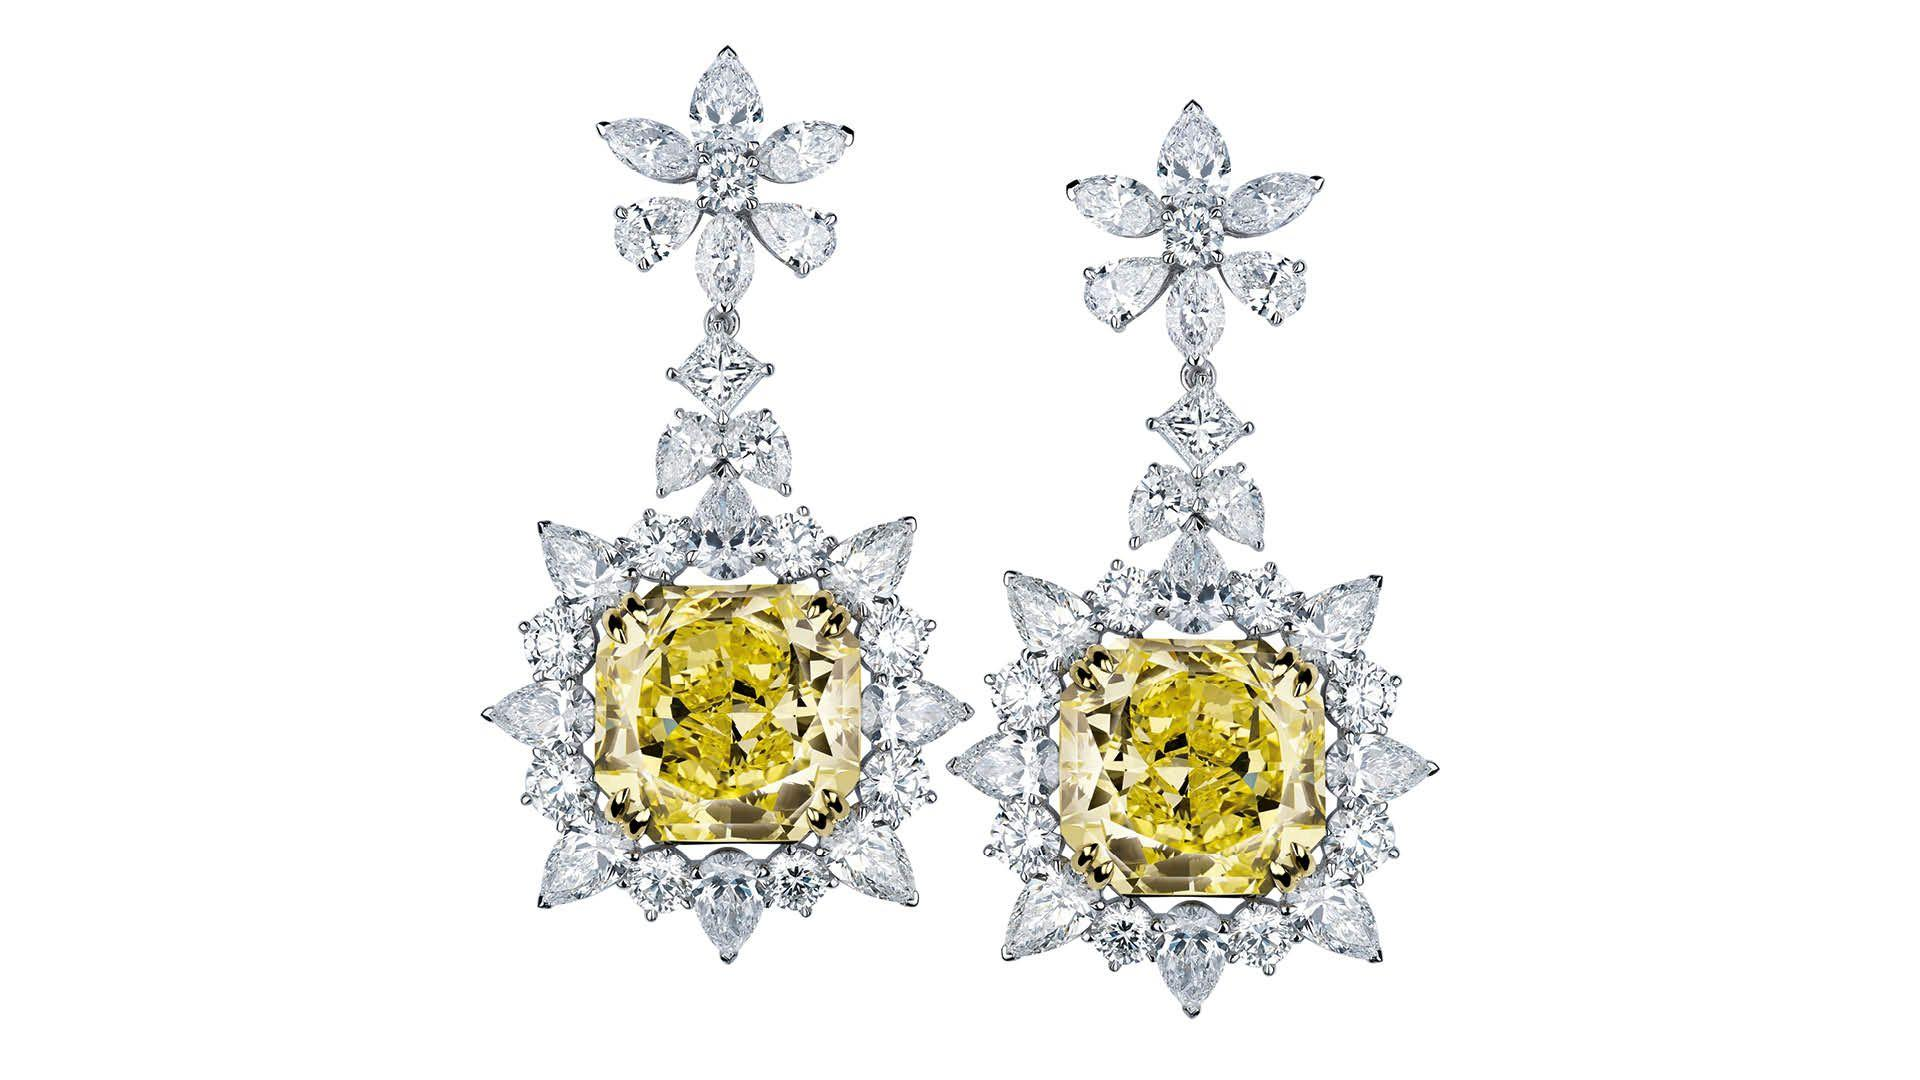 Le Soleil yellow diamond earrings by Mouawad